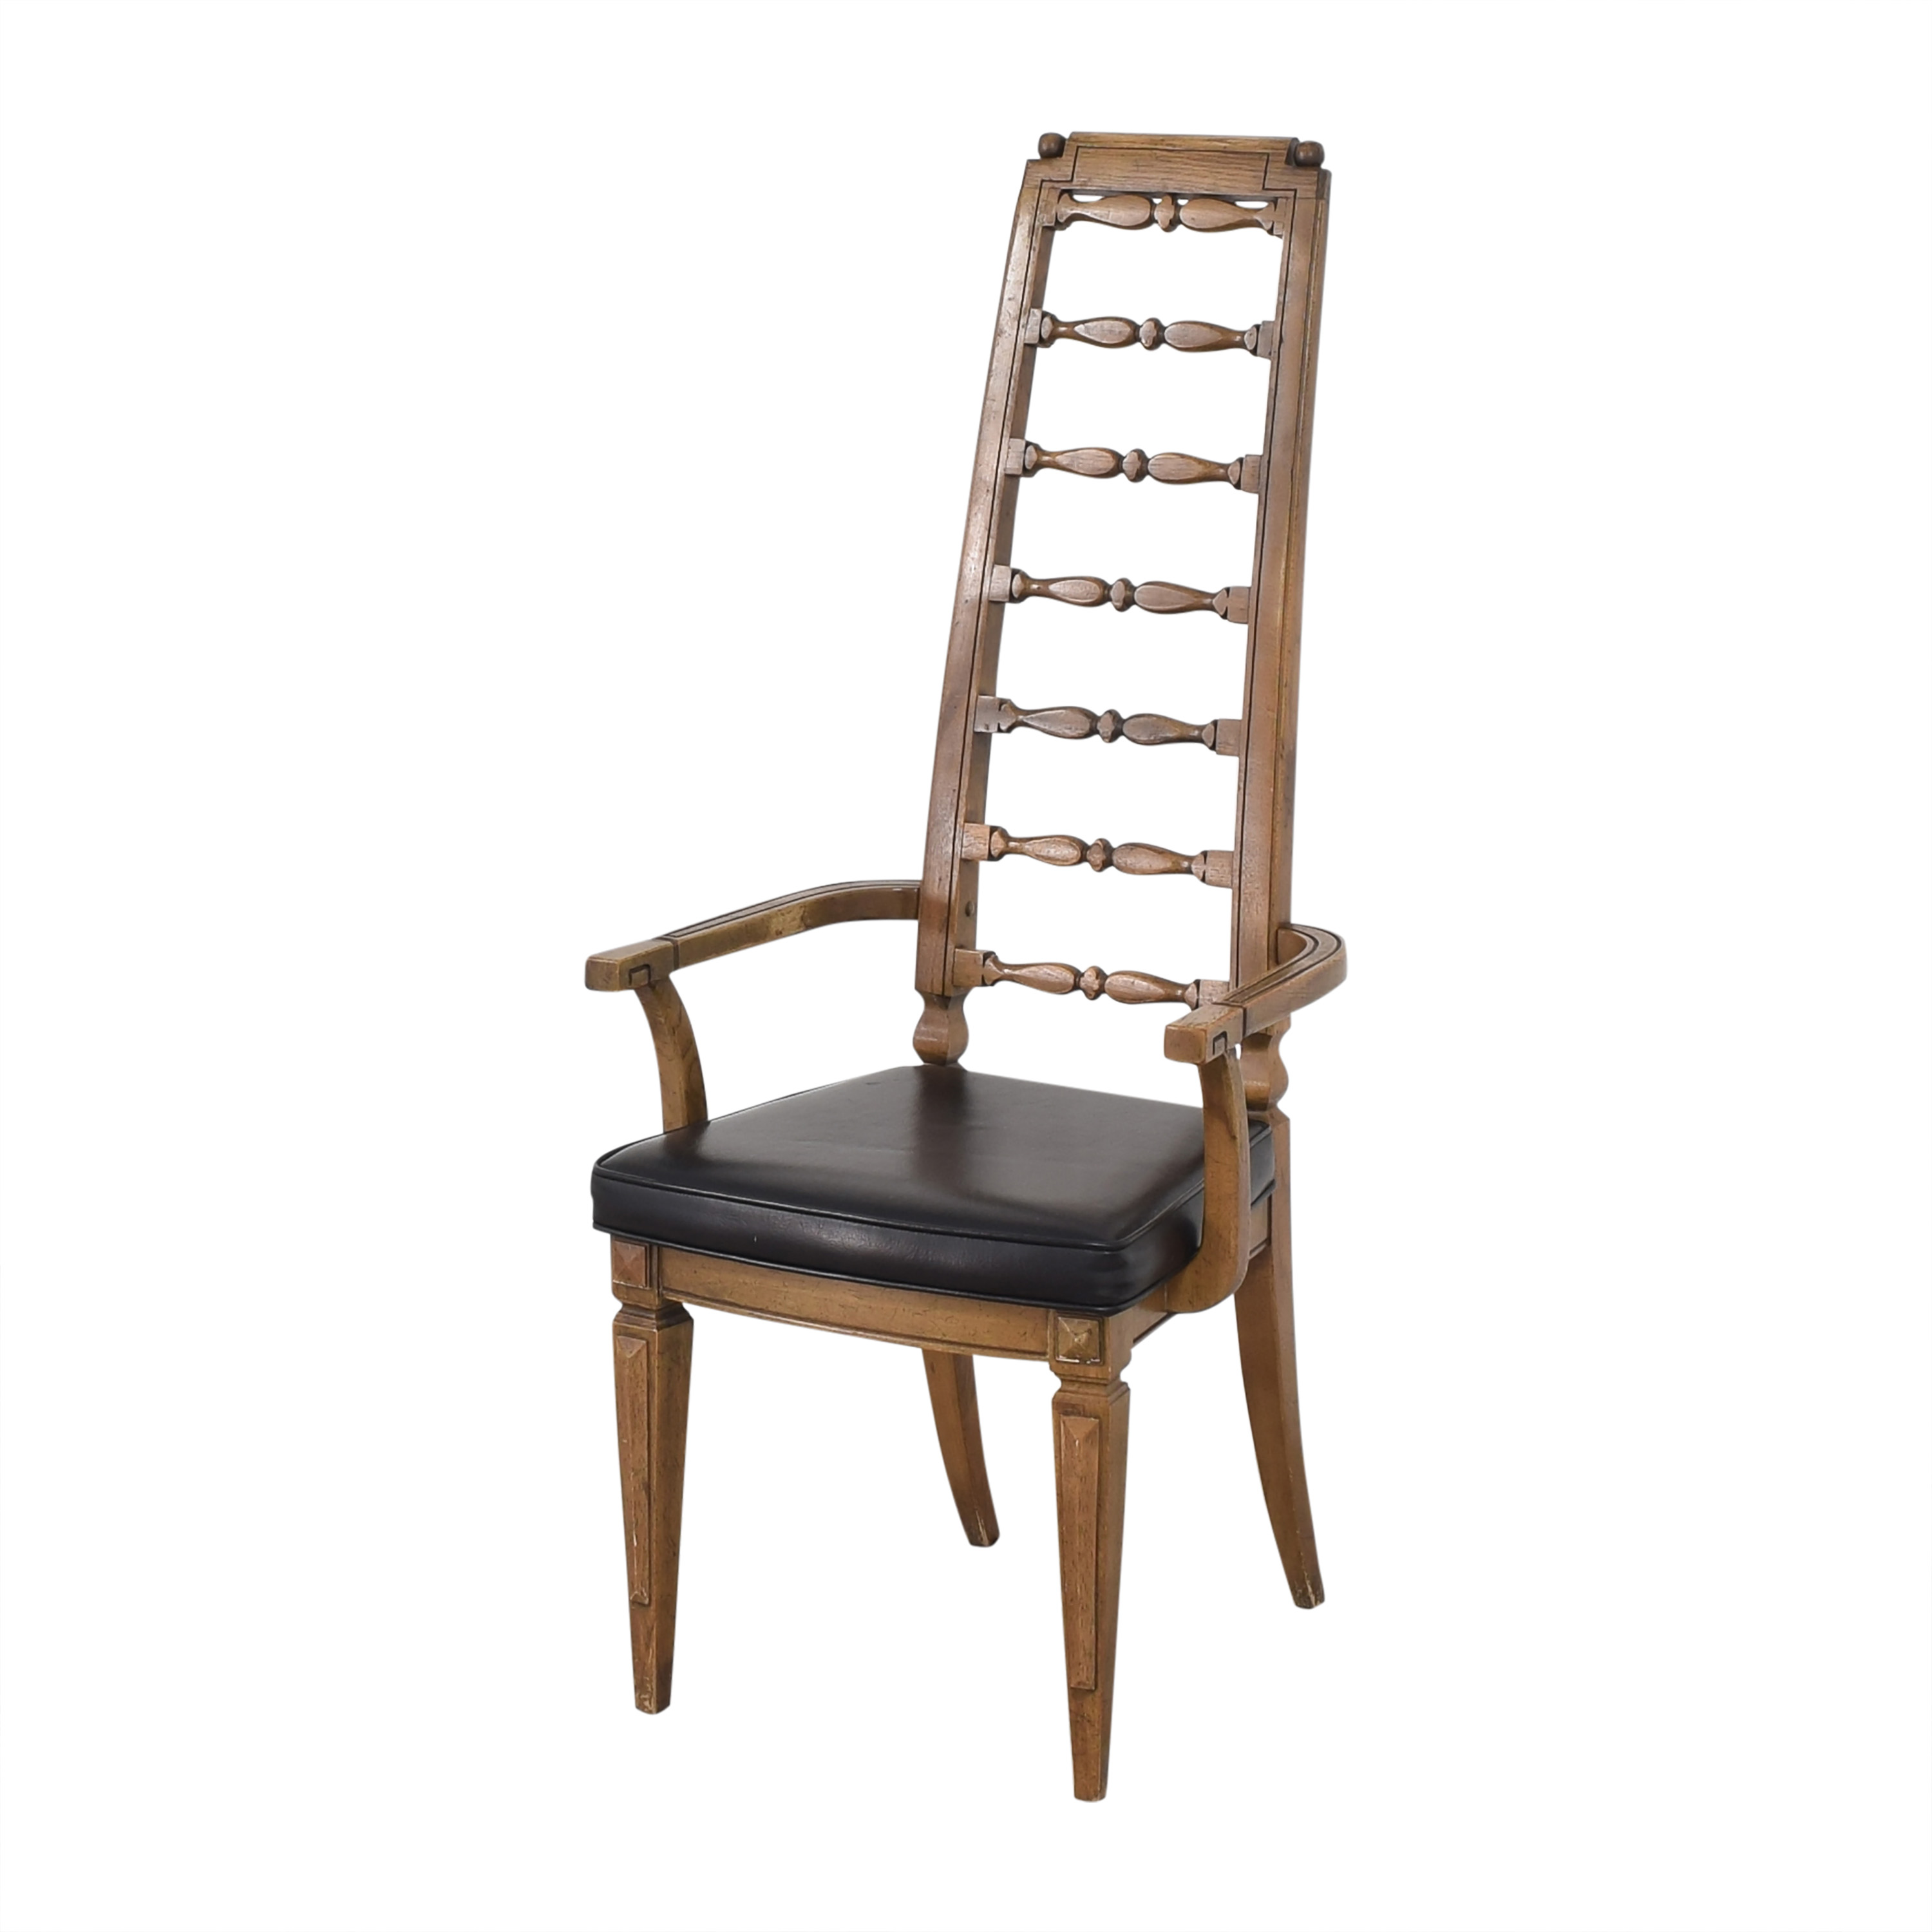 Thomasville Thomasville Tall Ladder Back Dining Arm Chair nyc